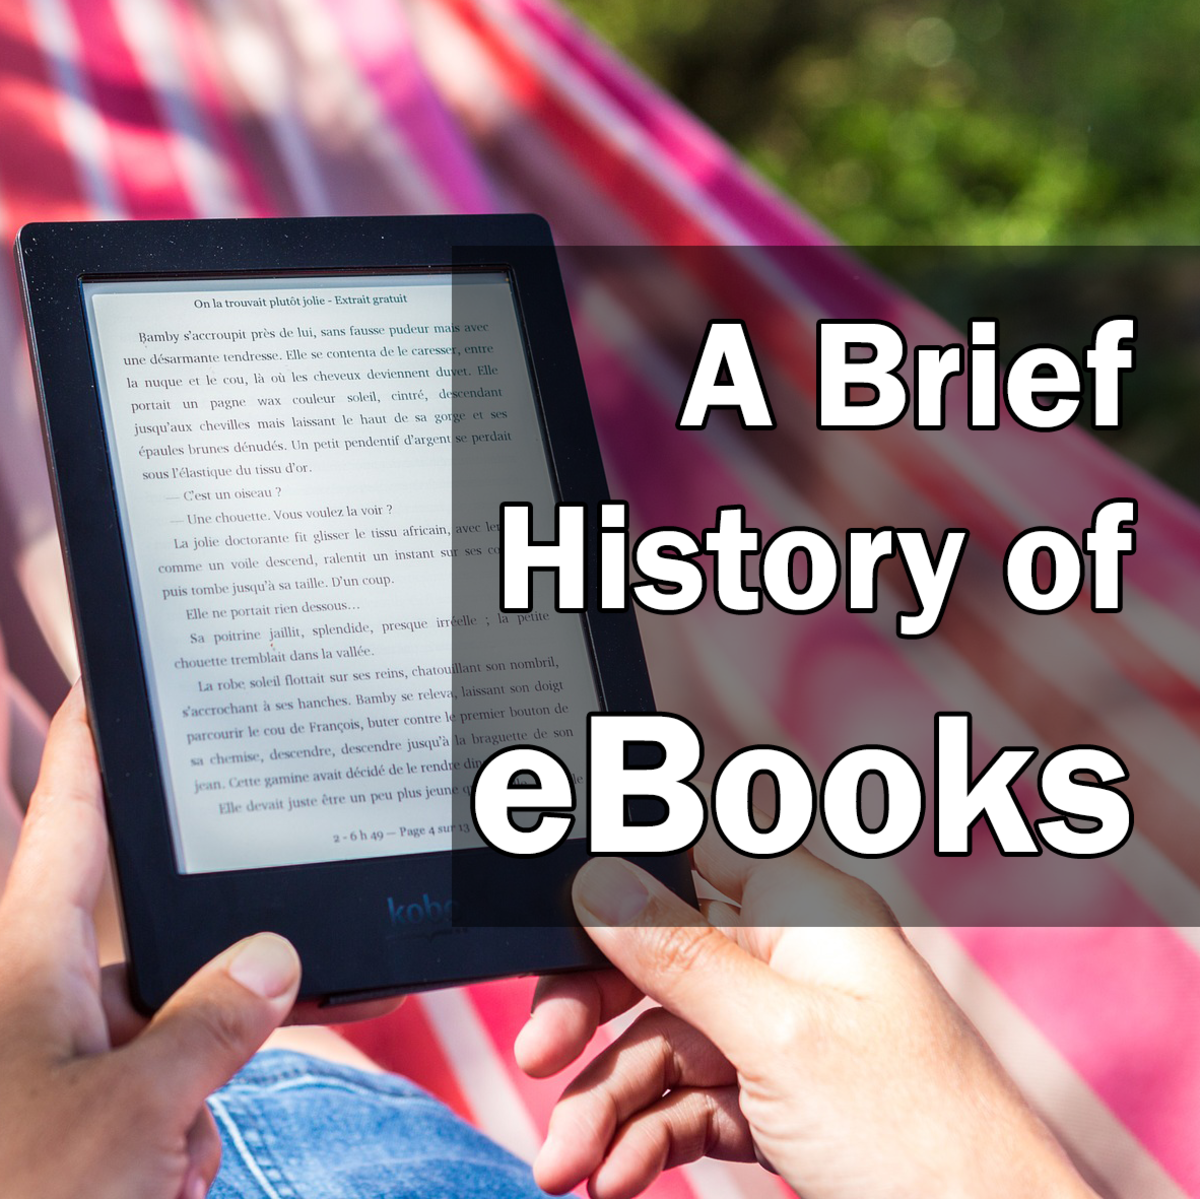 A Brief History of Electronic Book Technology